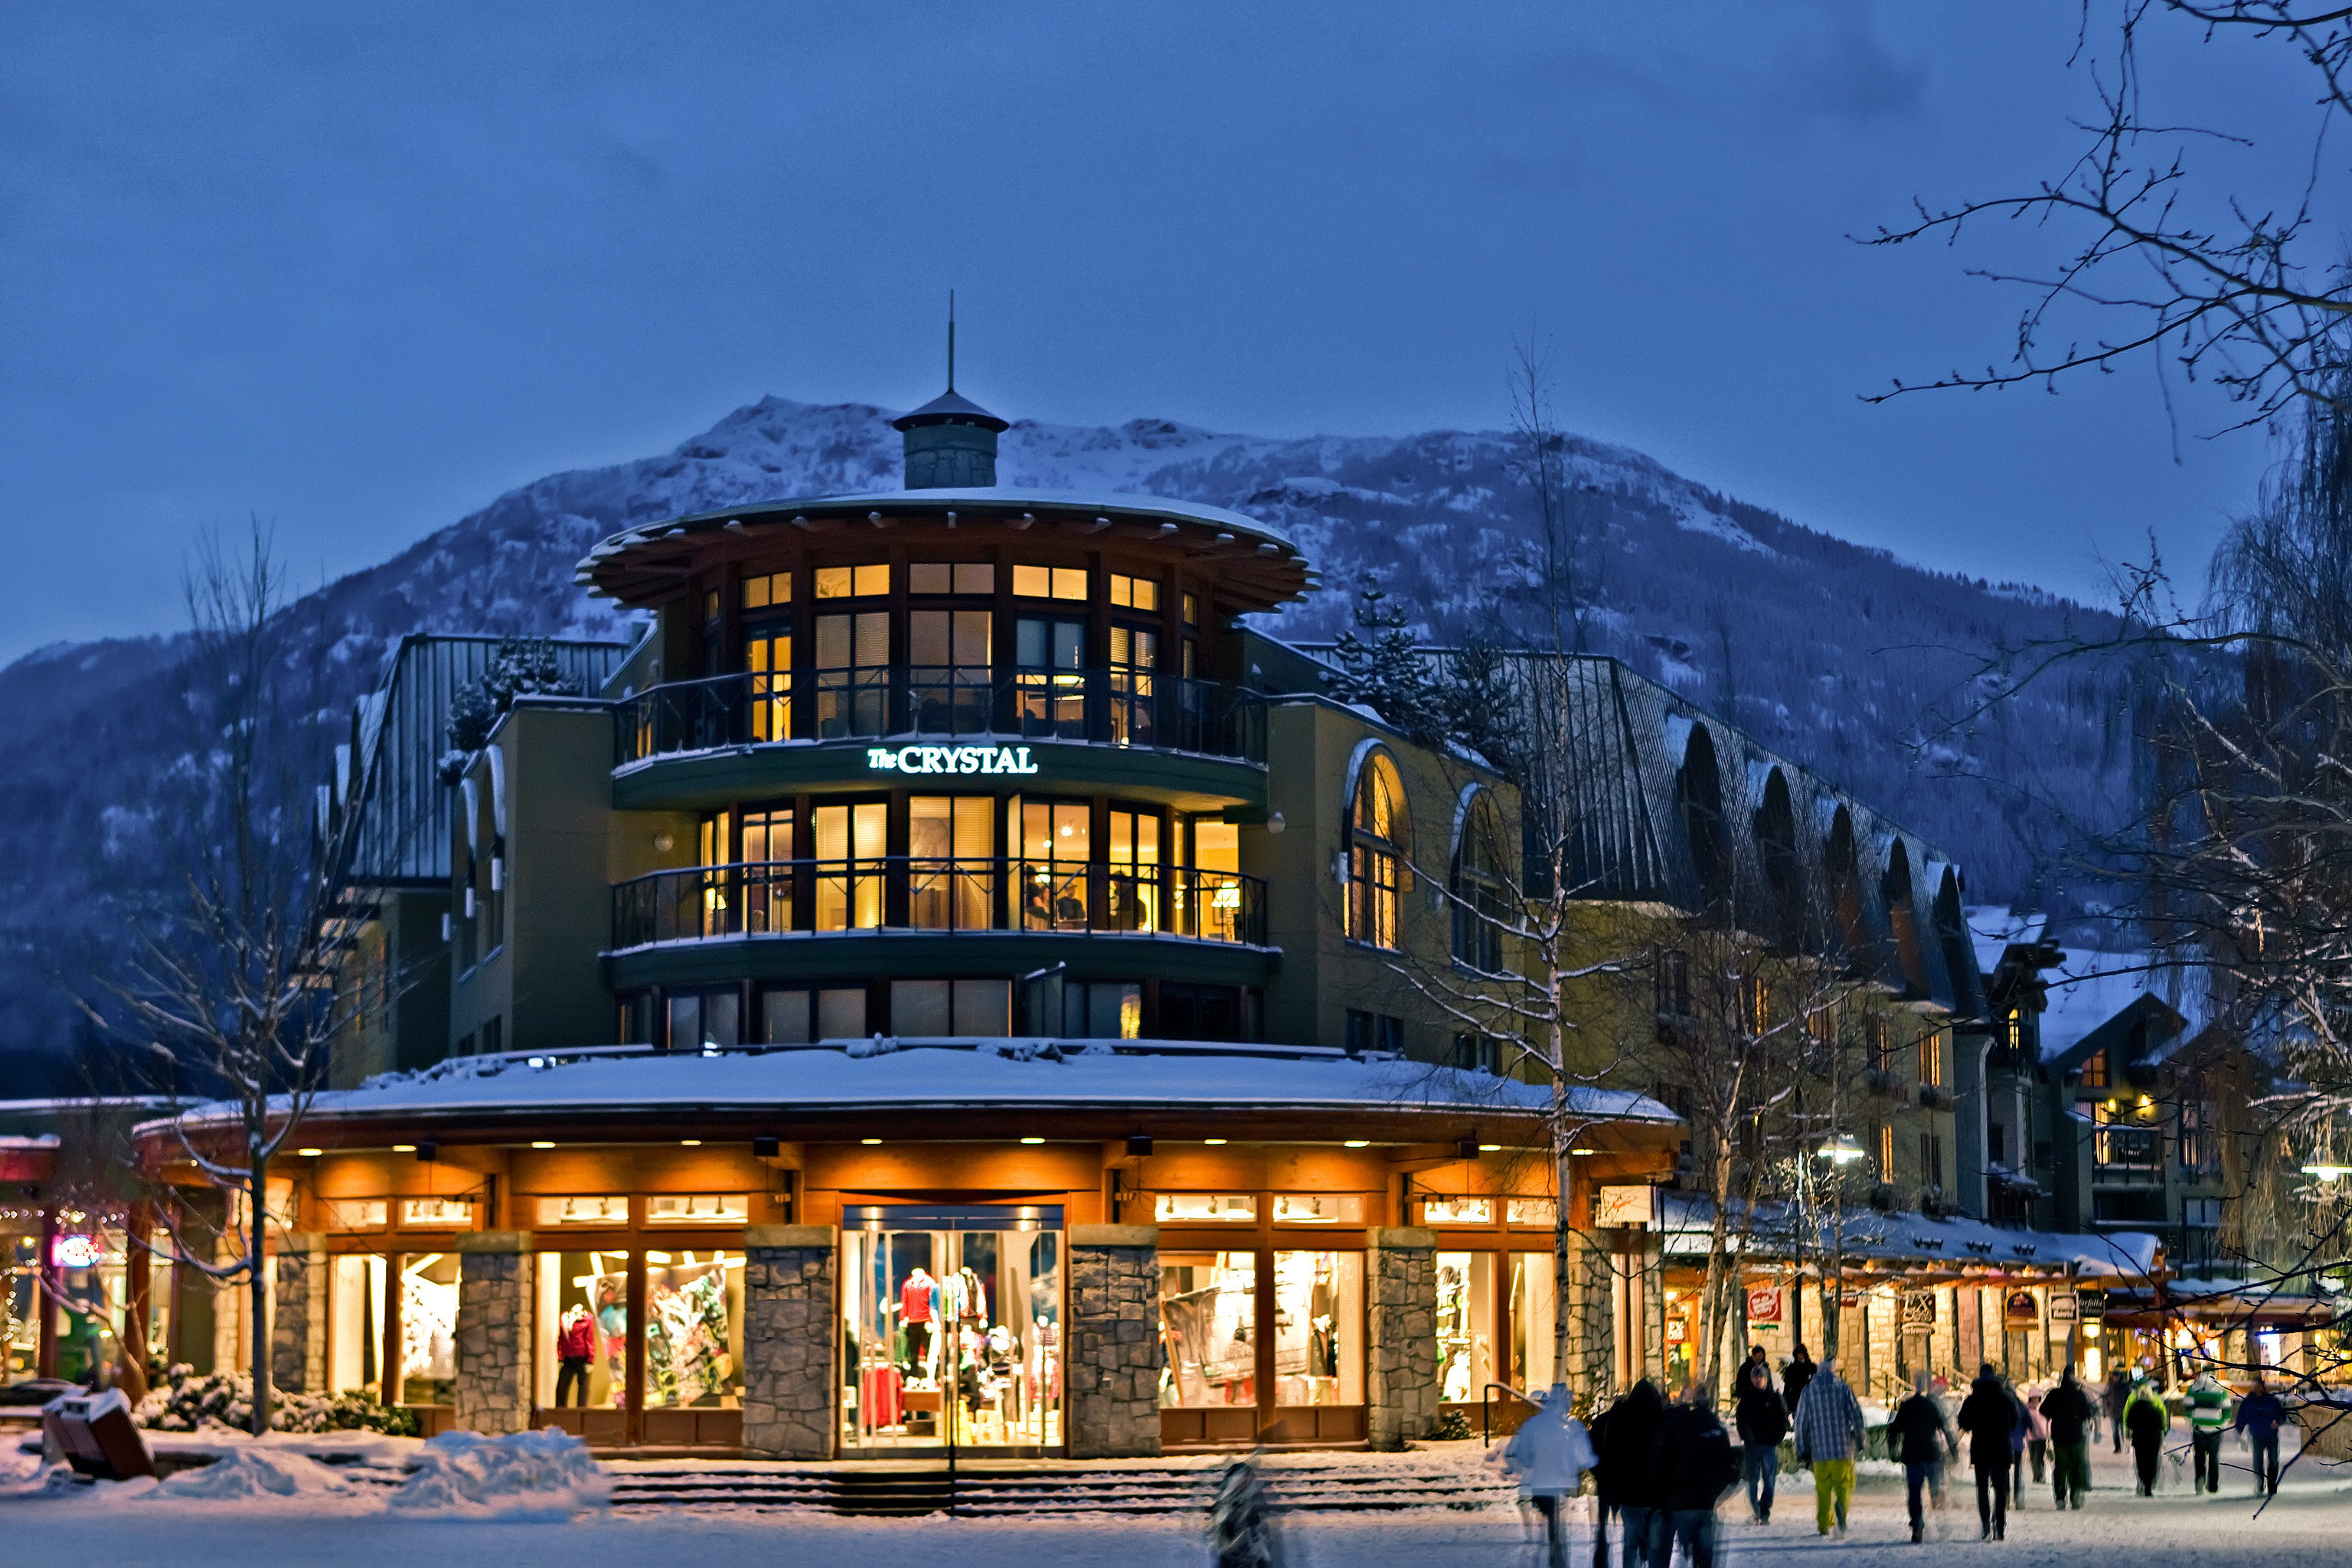 Architecture Buildings Exterior Mountains Outdoor Activities Scenic views Ski sky snow Town landmark Winter night evening Resort Downtown cityscape ice rink traveling